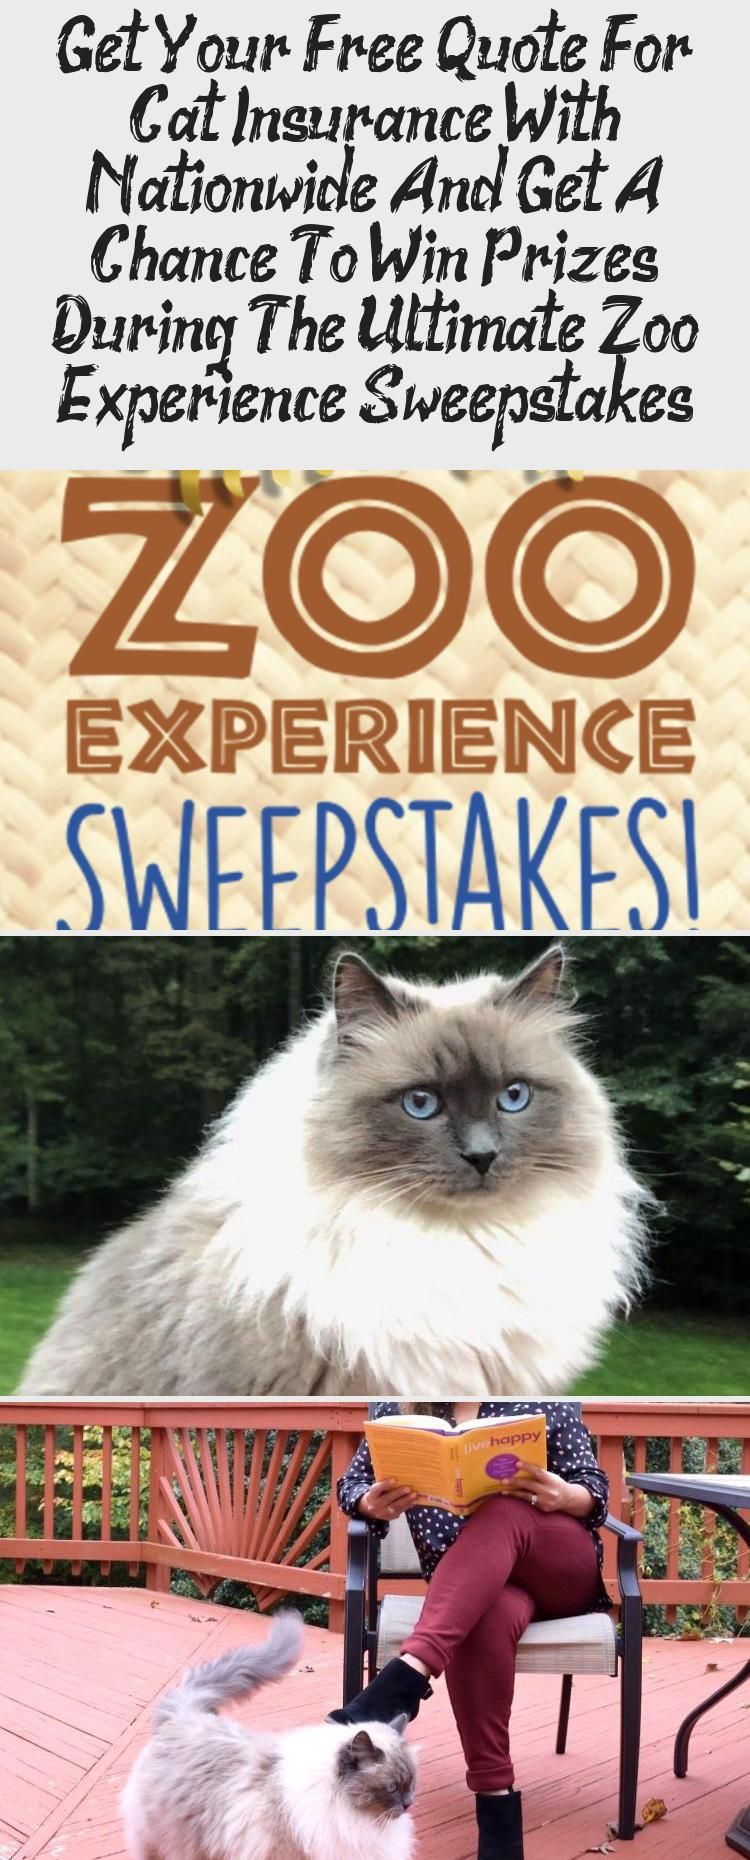 Get Your Free Quote For Cat Insurance With Nationwide And Get A Chance To Win Prizes During The Ultimate Zoo Experience Sweepstakes In 2020 Cat Insurance Cat Parenting Pet Insurance Quotes